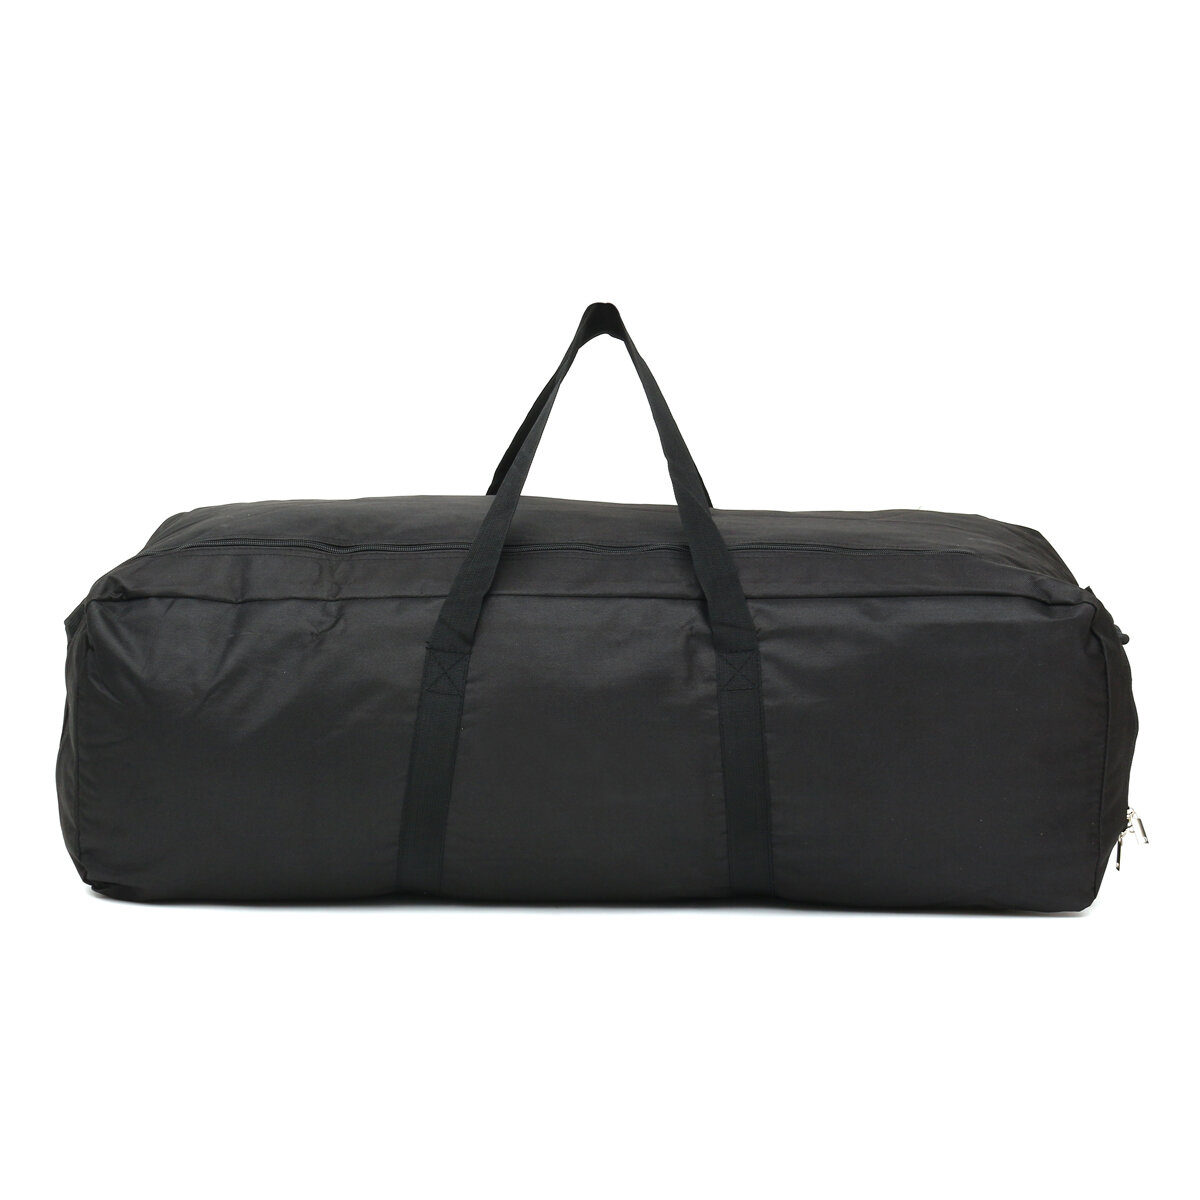 Outdoor Camping Travel Duffle Bag Waterproof Oxford Foldable Luggage Handbag Storage Pouch